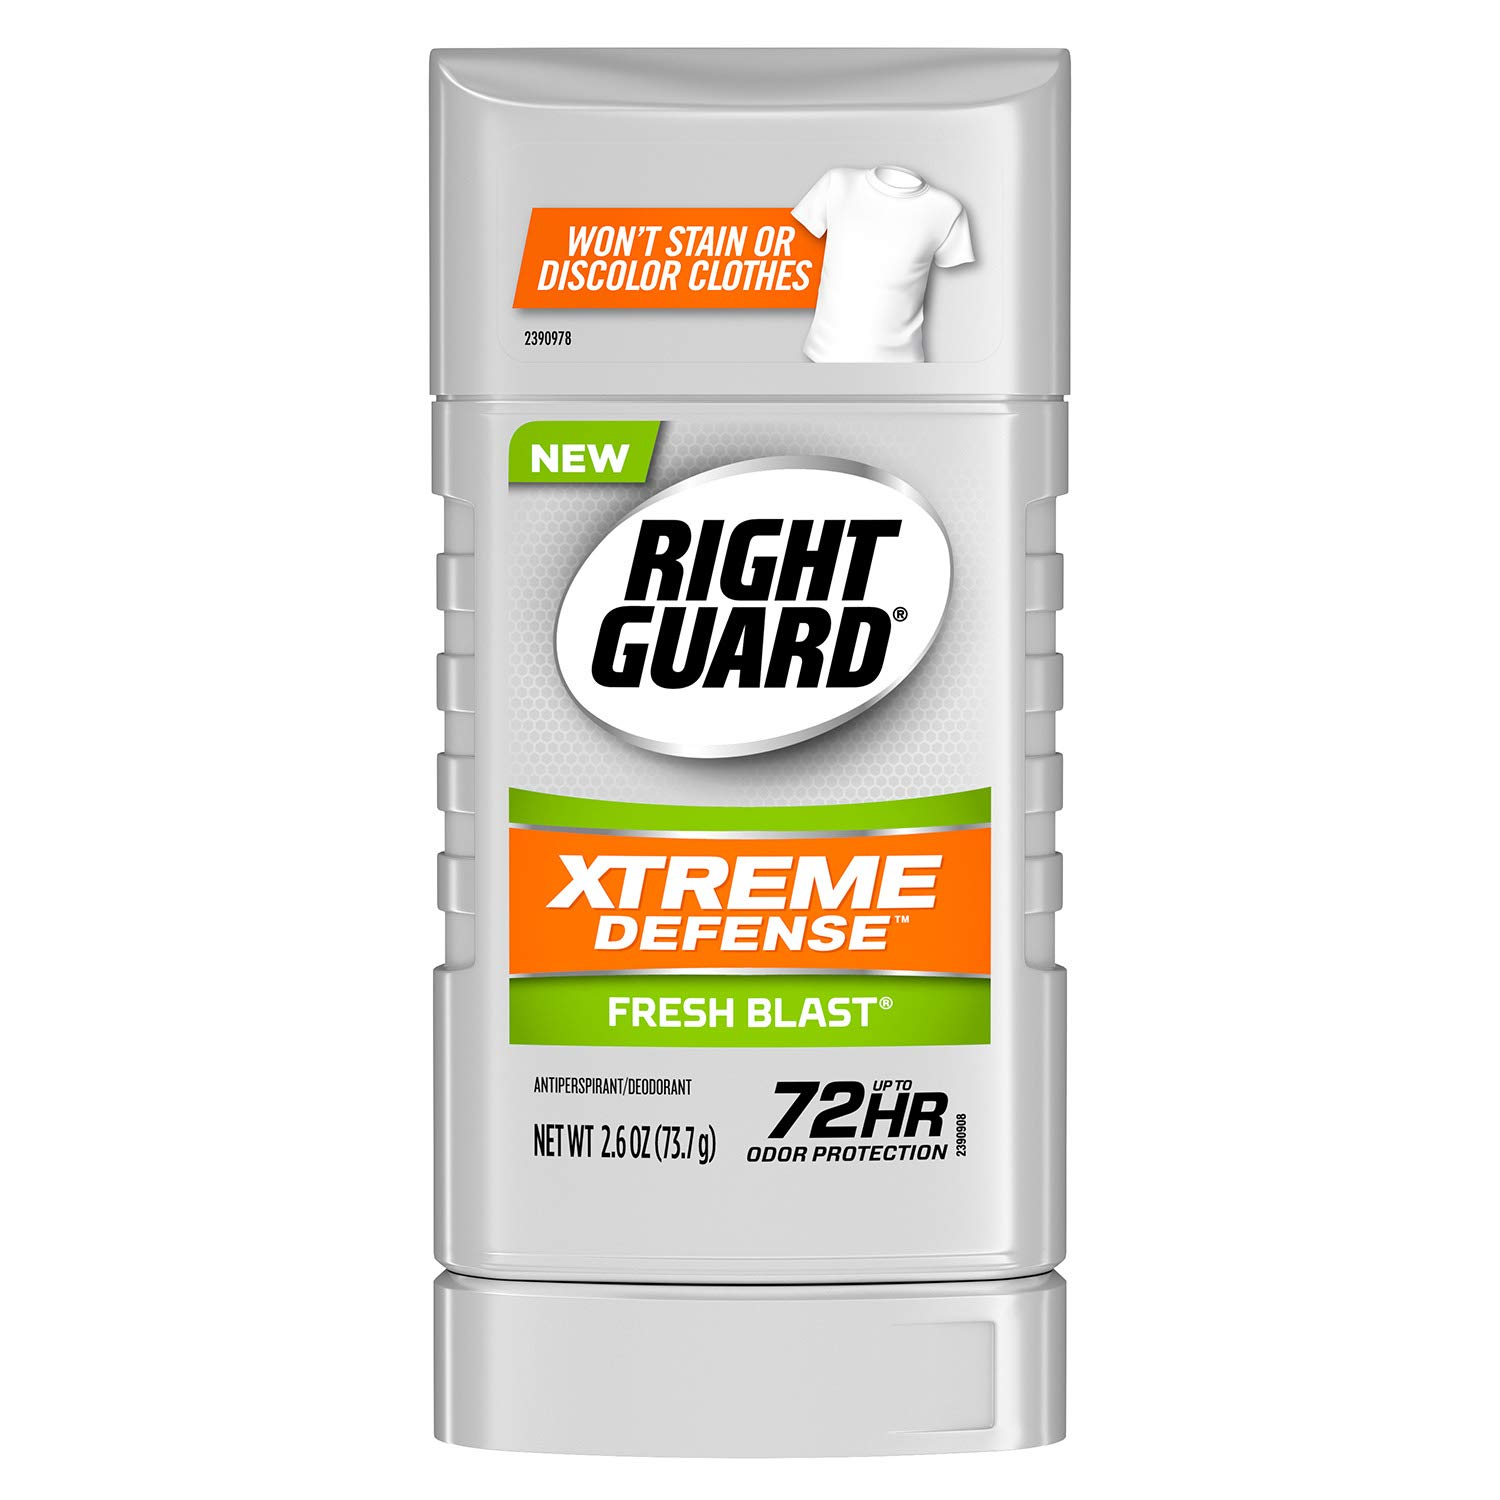 Right Guard Xtreme Defense Antiperspirant Deodorant Invisible Solid Stick, Fresh Blast, 2.6 Ounce (Pack of 6)